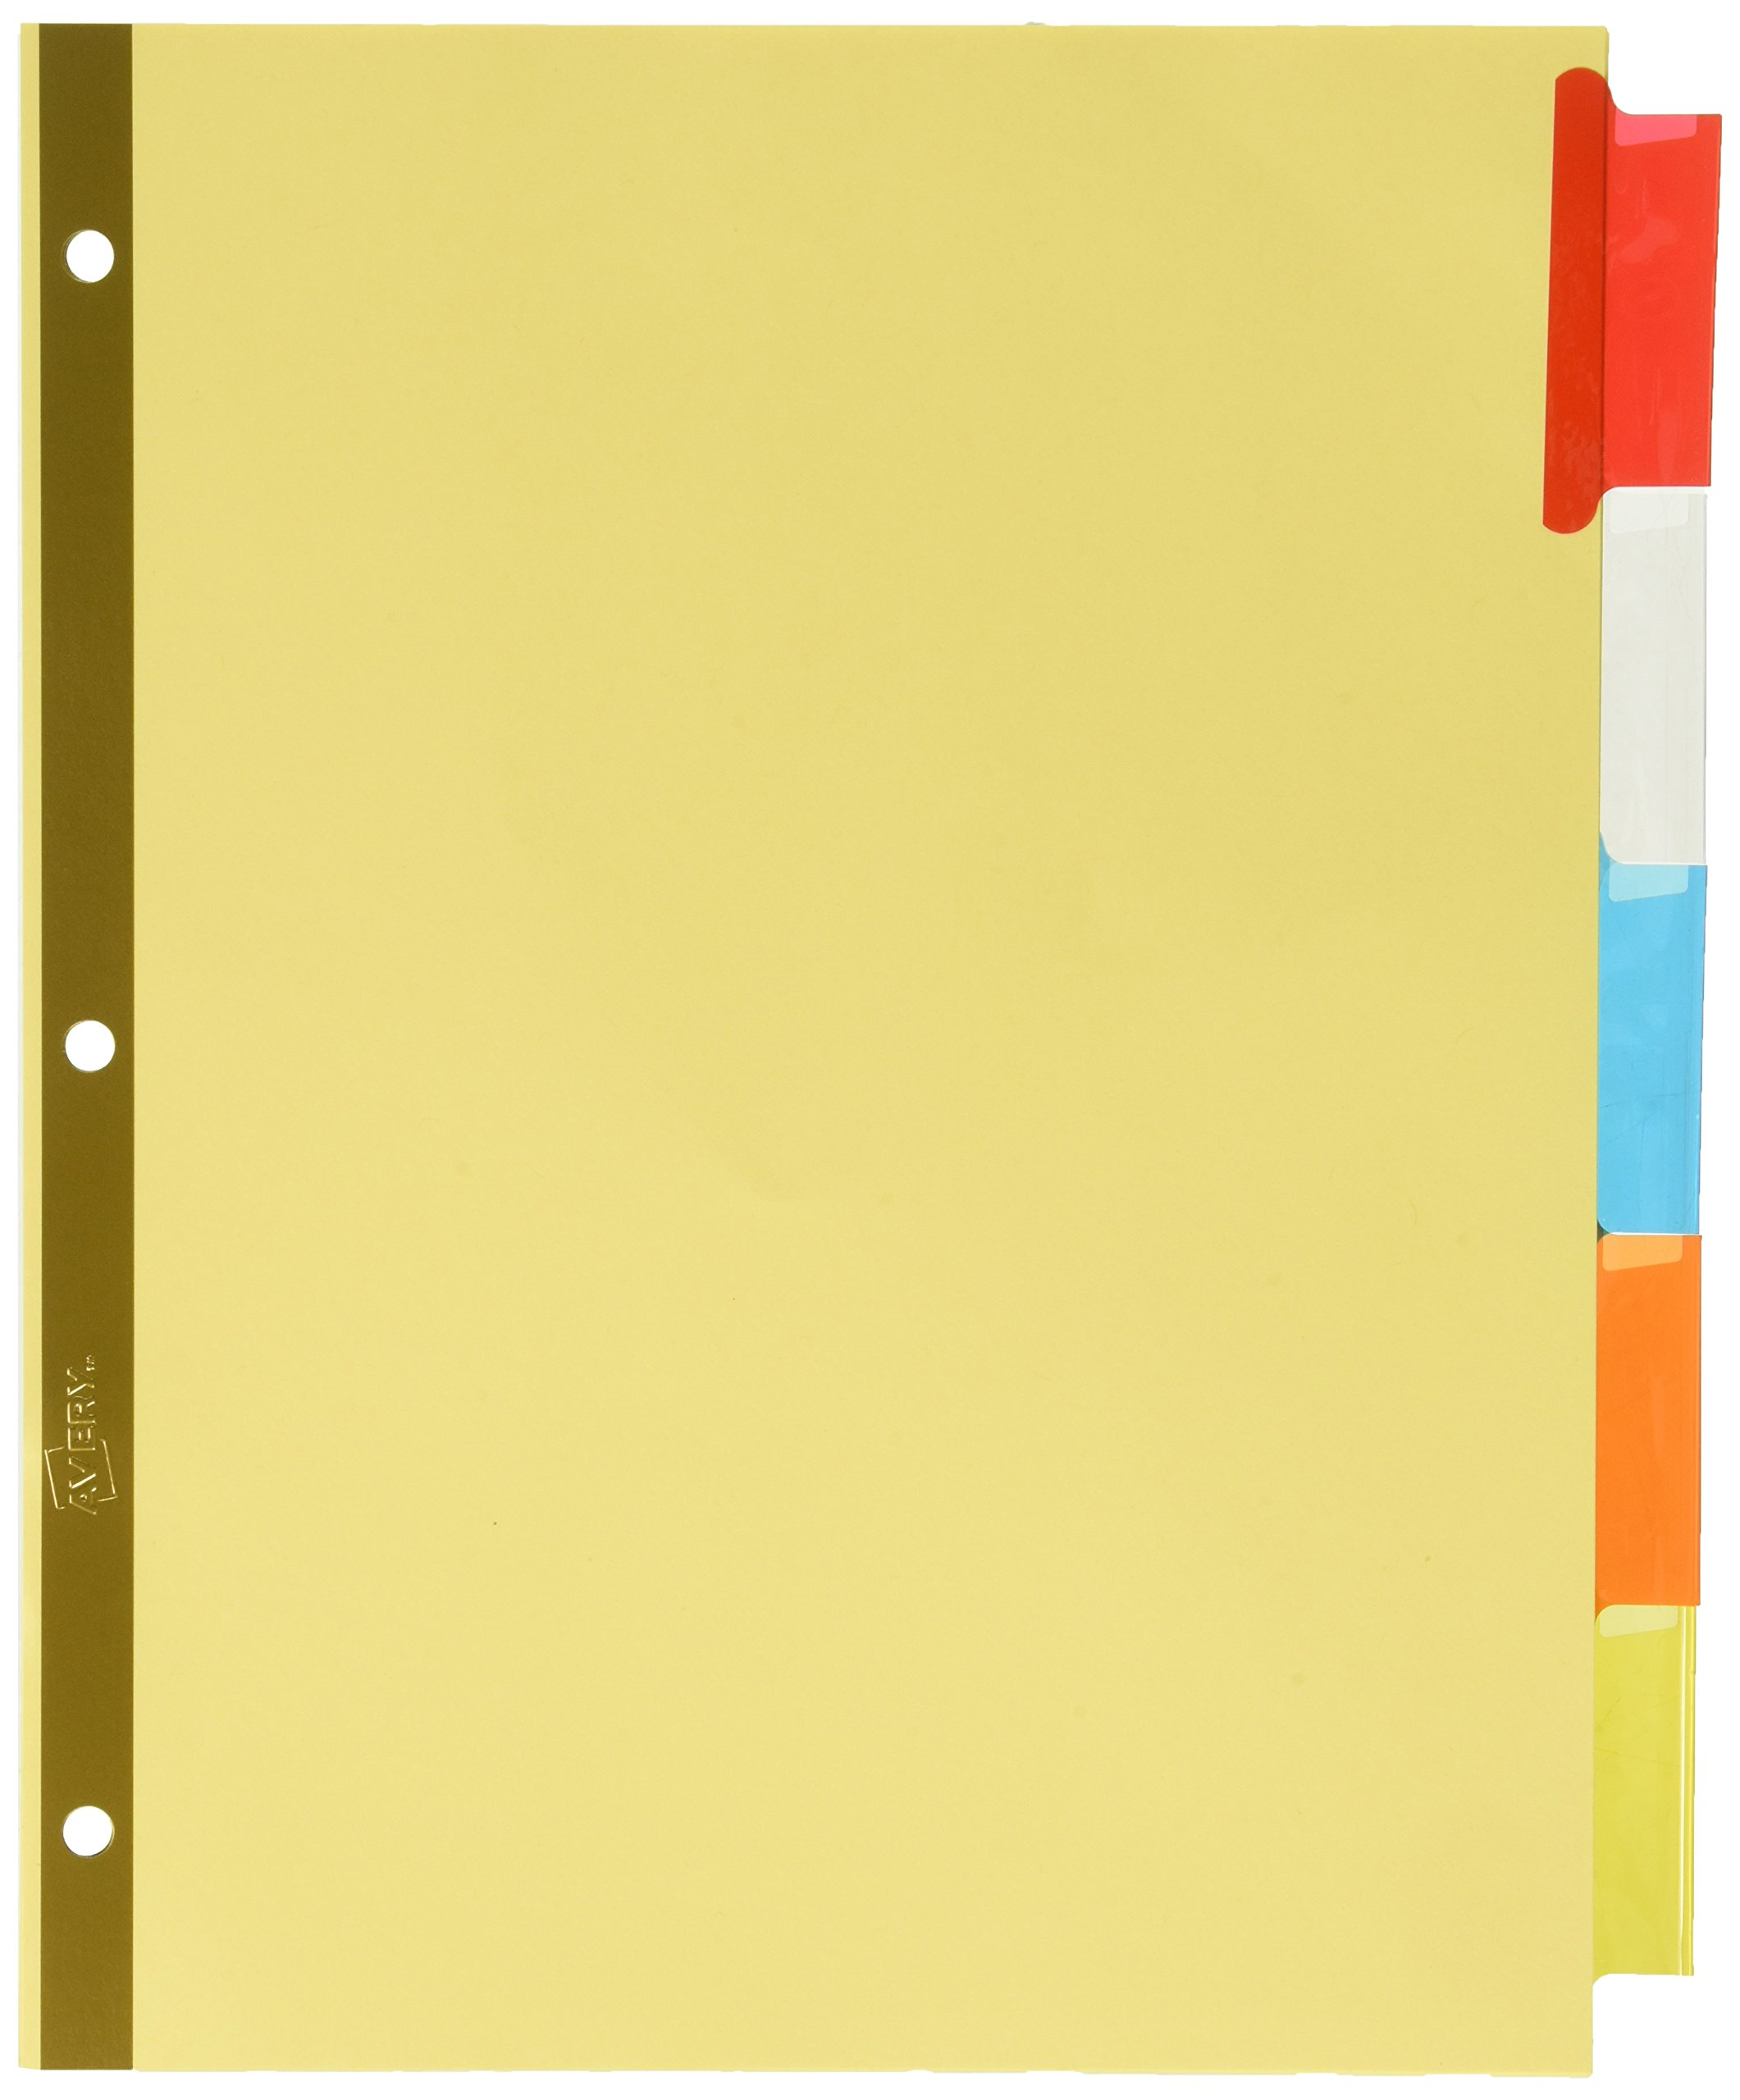 Avery Big Tab Insertable Dividers, Buff Paper, 5 Multicolor Tabs, Case Pack of 48 Sets (11109)